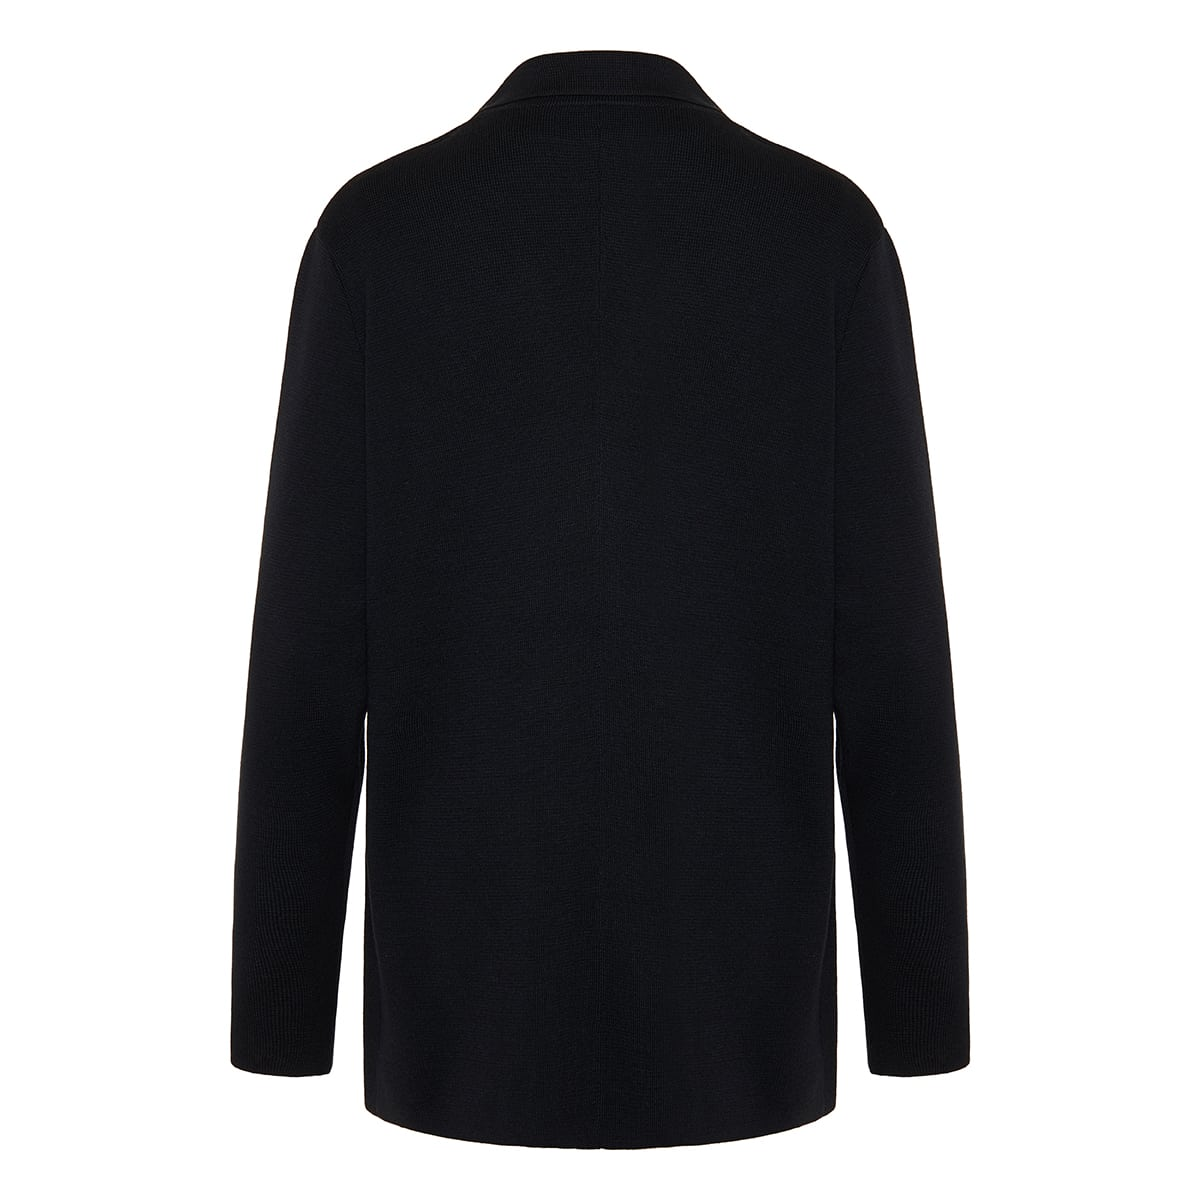 Chopok double-breasted knitted blazer